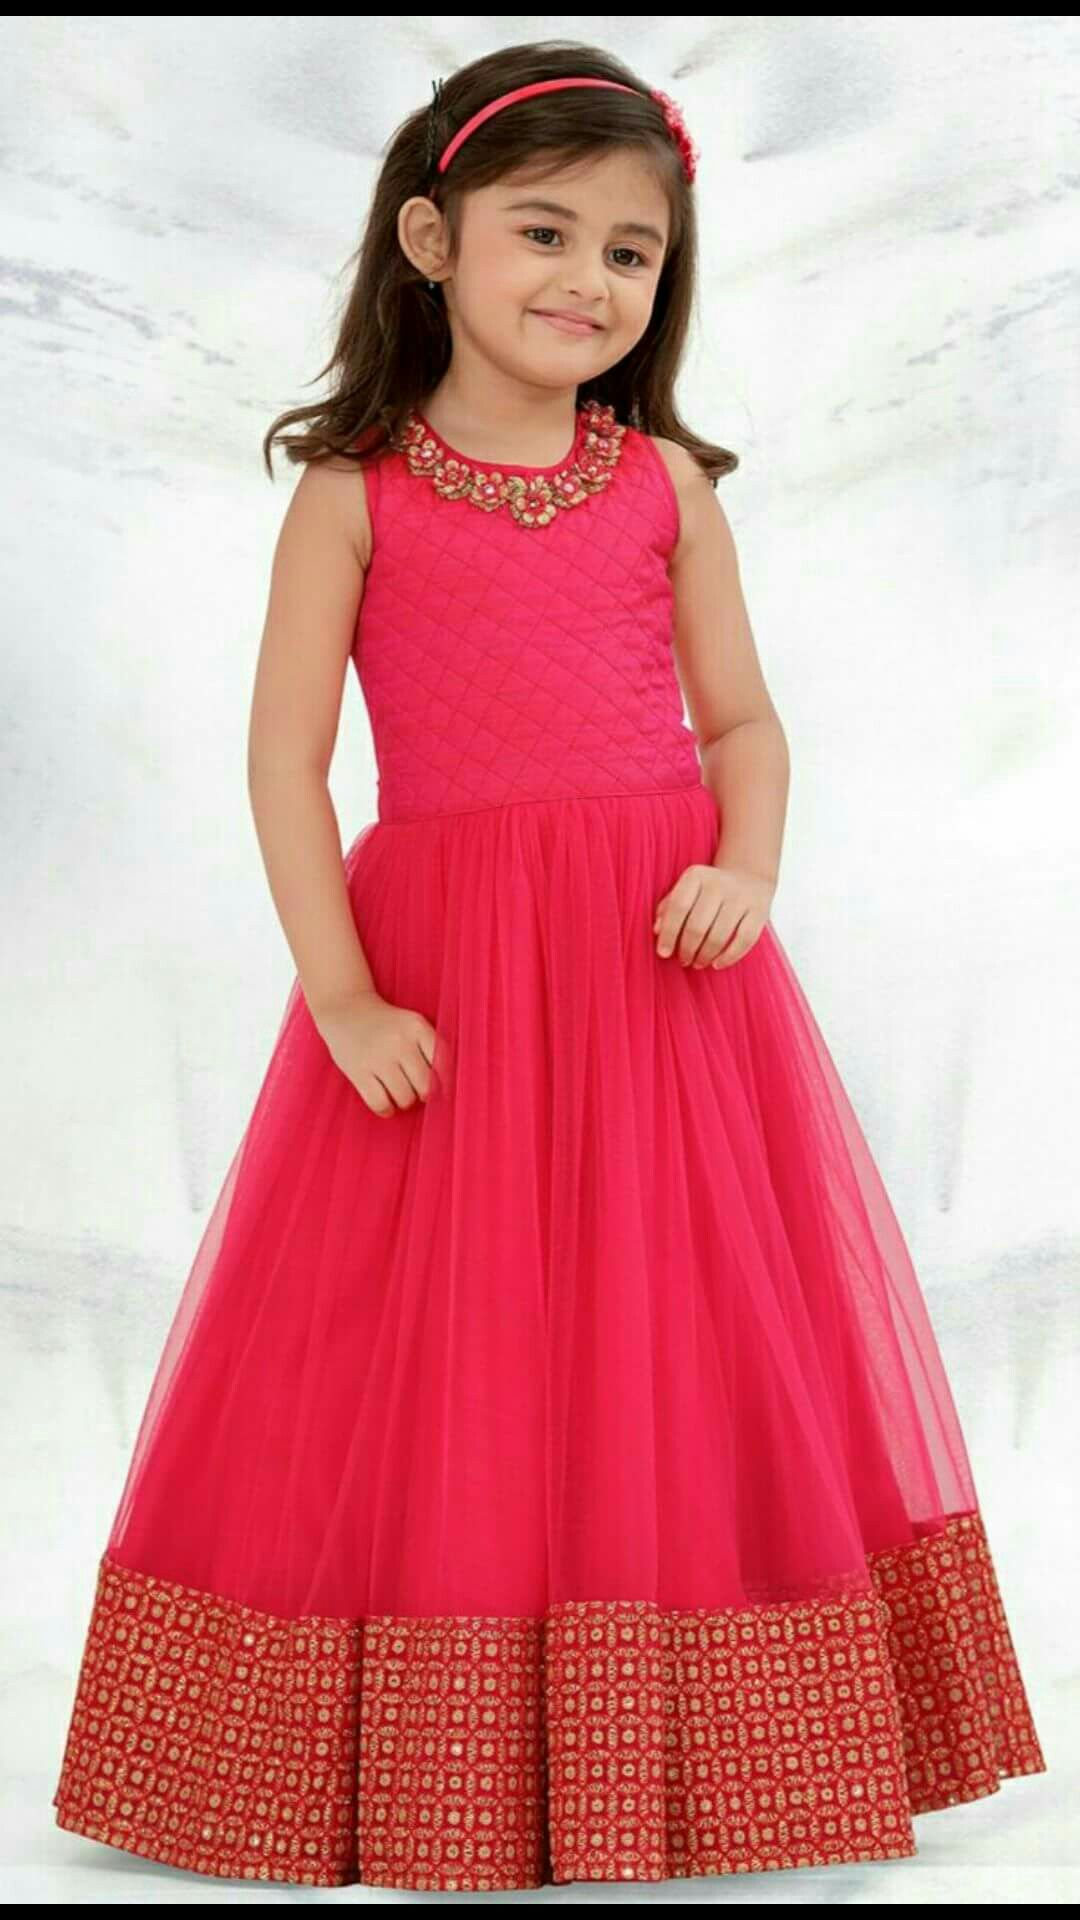 f61778f6a6c7c Frocks | frocks in 2019 | Kids gown, Kids party wear dresses, Gowns ...